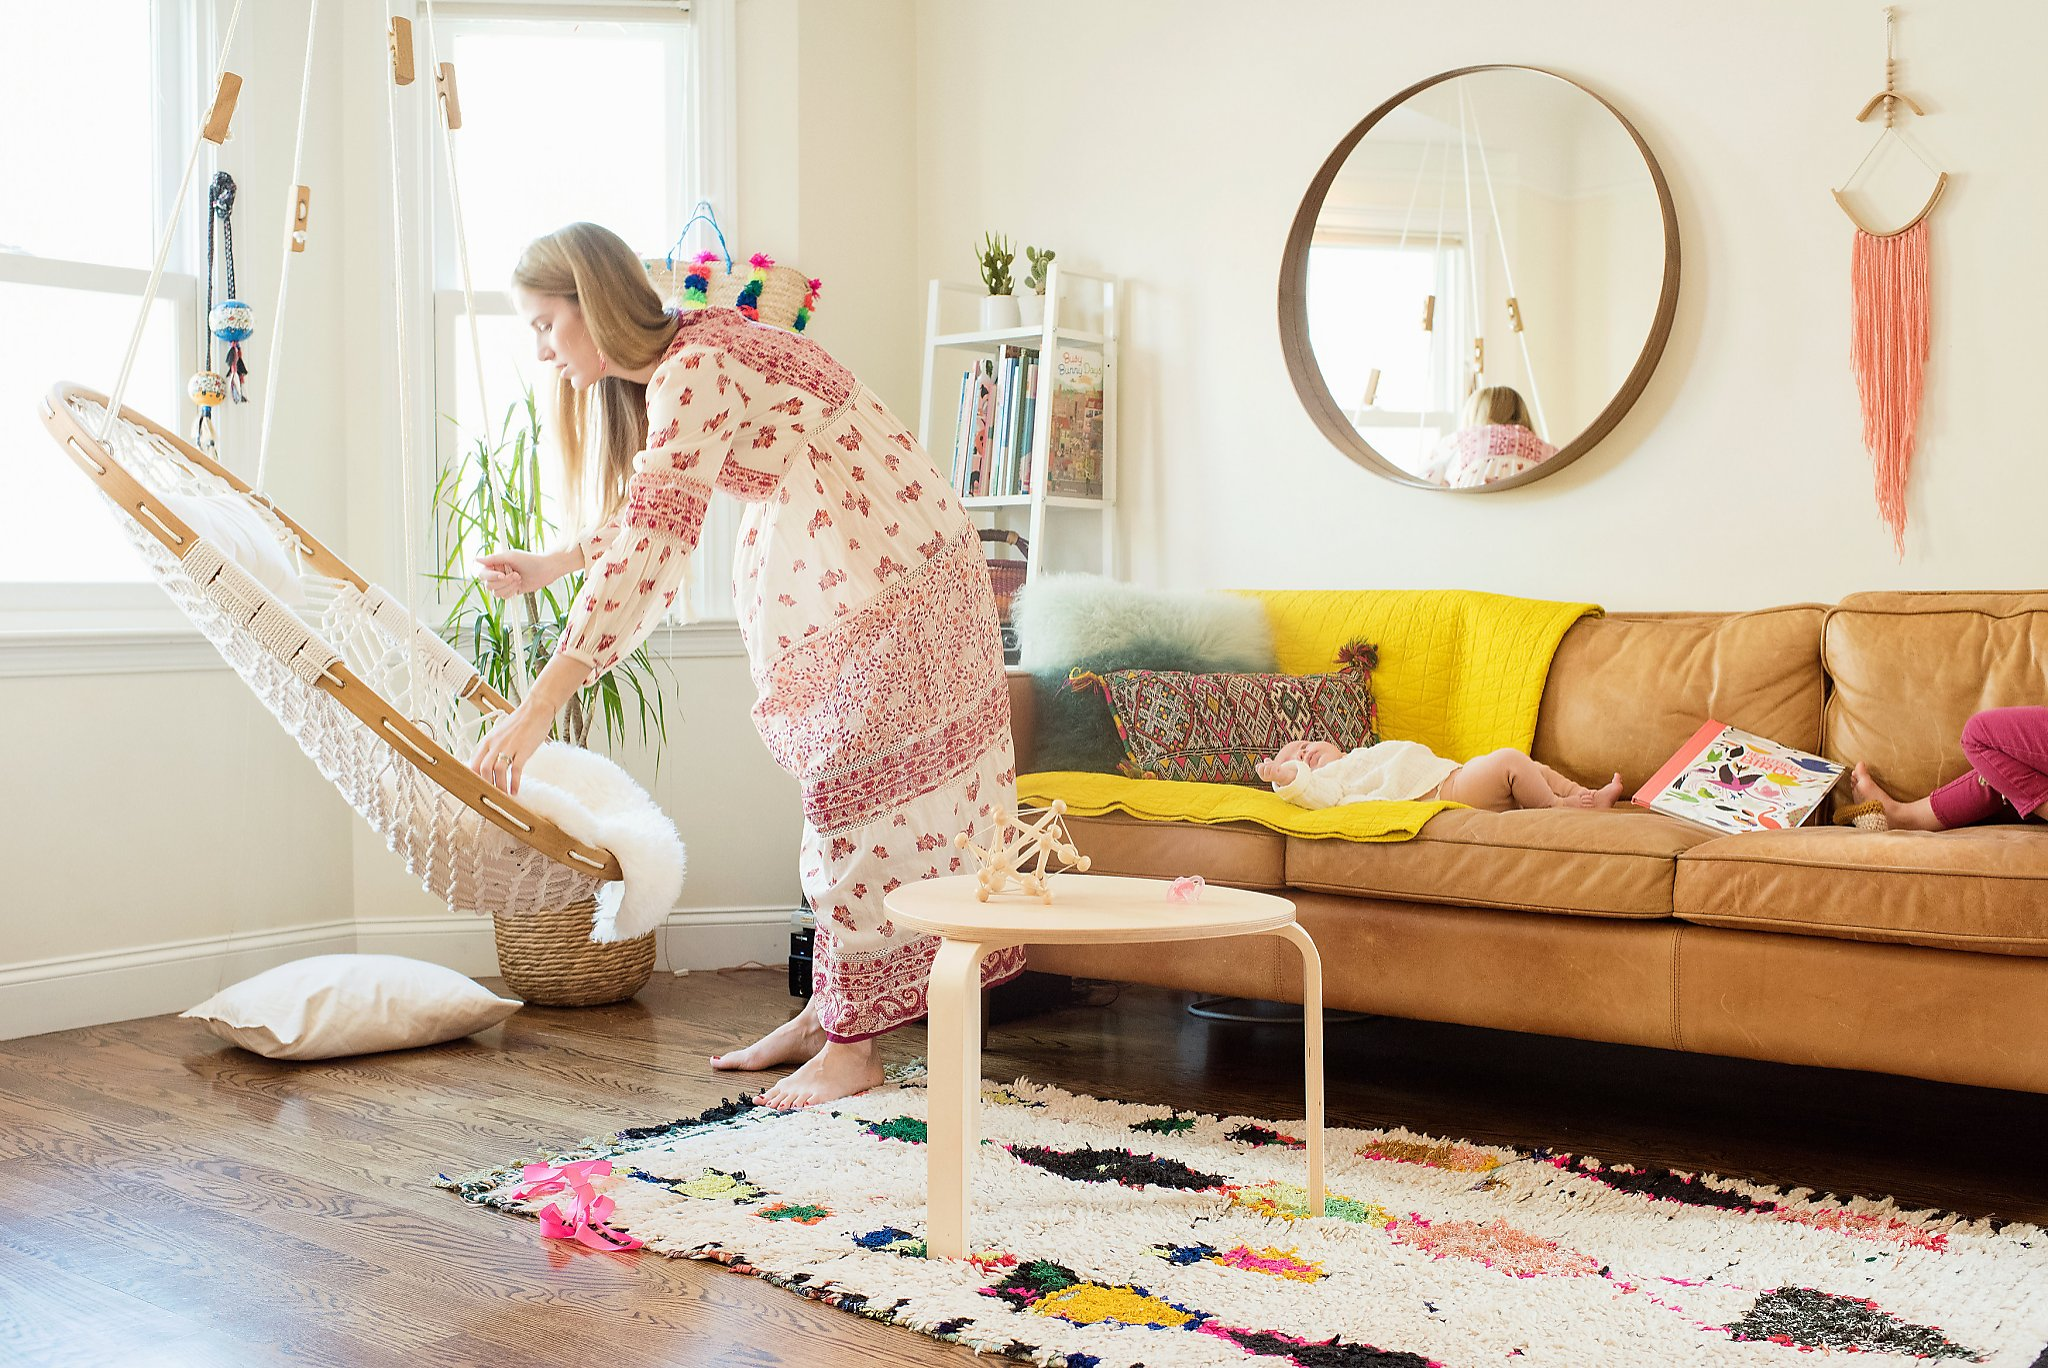 Inside The Colorful Home And World Of Chloe Fleury